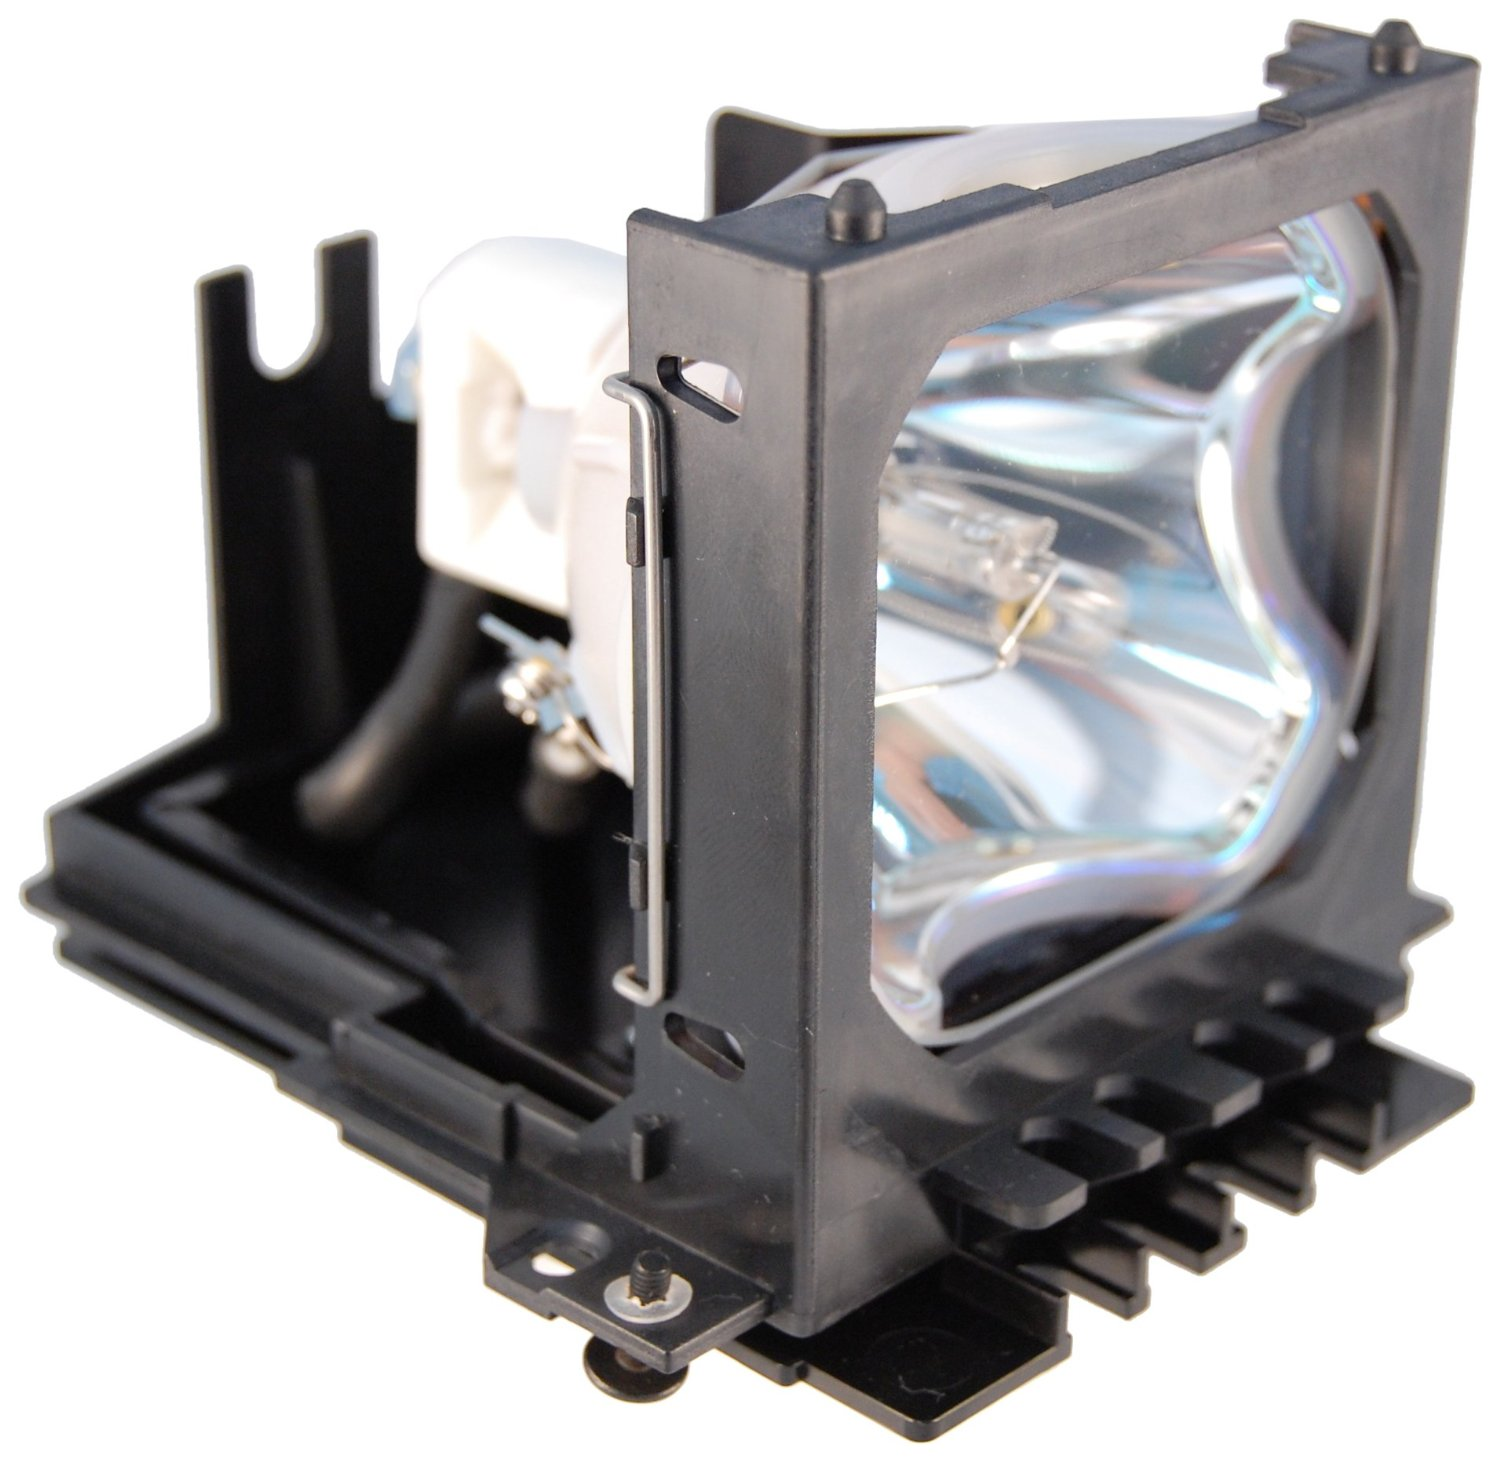 DT00601 DT-00601 GLH-094 for HITACHI CP-SX1350 CP-SX1350W CP-X1230 CP-X1250 CP-X1350 Projector Bulb Lamp with housing compatible projector lamp dt00601 bulb for cp sx1350 cp sx1350w cp x1230 cp x1250 cp x1350